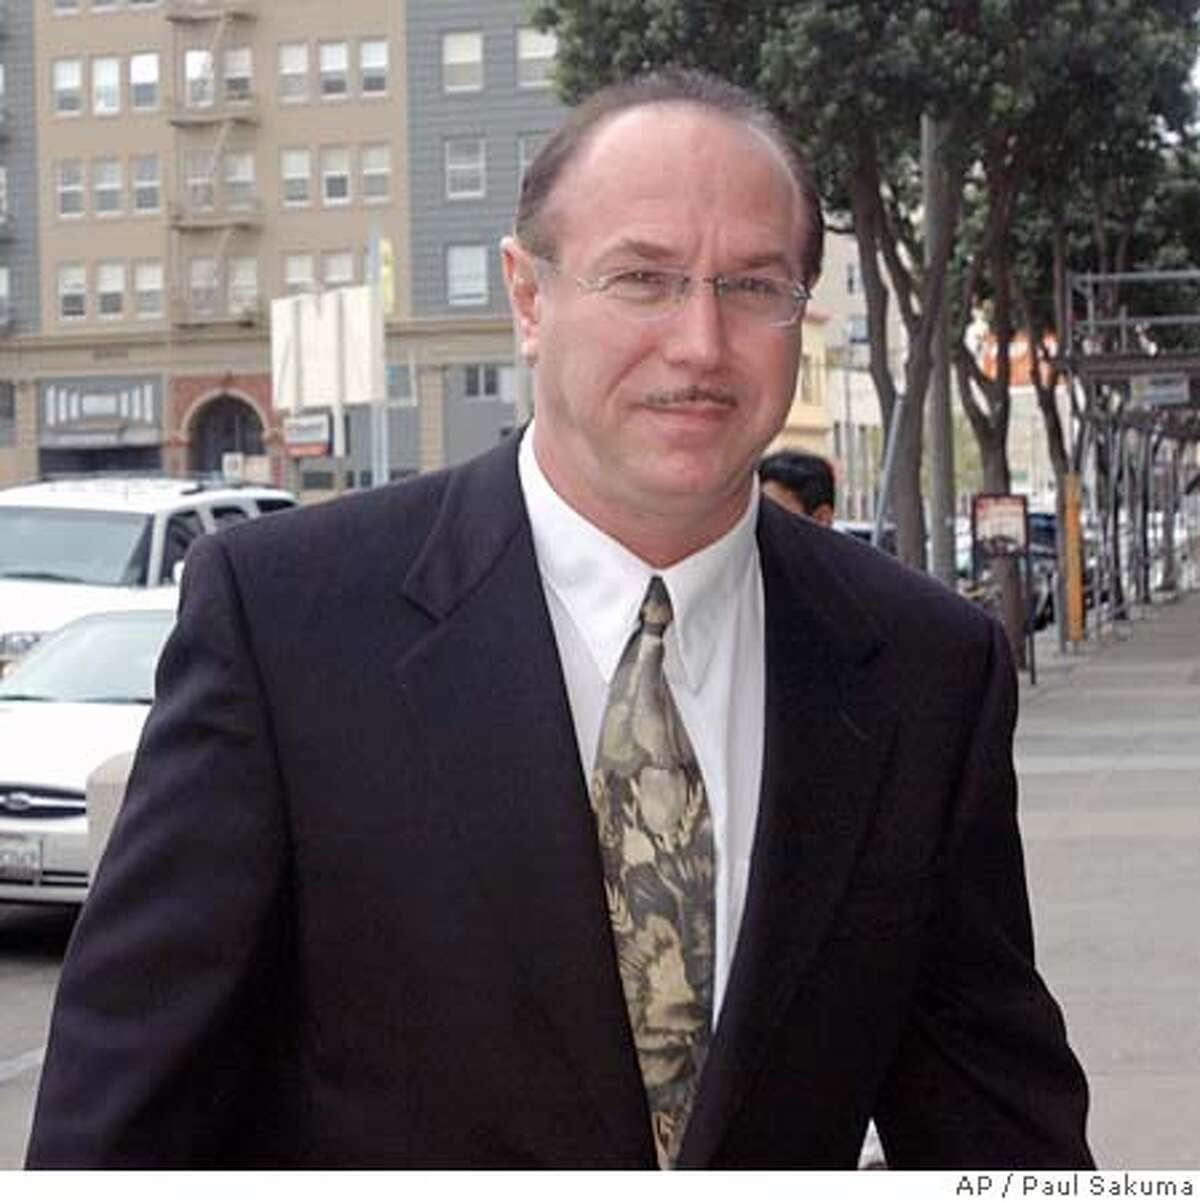 ** FILE ** Victor Conte, San Francisco Giants Barry Bonds' nutritional adviser and founder of the Bay Area Laboratory Co-Operative (BALCO) arrives at the Federal Courthouse in San Francisco, in this March 26, 2004 photo. The lack of a plea agreement between prosecutors and Conte, accused of distributing steroids to top athletes may make it more difficult for anti-doping authorities to build drug cases against track stars. Conte, founder of the Bay Area Laboratory Co-Operative, and his attorneys met with federal authorities for about three hours Thursday, June 4, 2004, in San Jose, Calif., but did not reach any deal. (AP Photo/Paul Sakuma) Ran on: 06-16-2004 Victor Conte says he could help in an investigation of the use of performance- enhancing substances. ALSO RAN: 06/28/2004 Ran on: 06-28-2004 Ran on: 06-28-2004 Ran on: 06-28-2004 Tim Montgomery, left, testified that the steroid distributed by Victor Conte, right, did not enhance his performance. A March 26, 2004 file photo Nation#MainNews#Chronicle#10/16/2004#ALL#5star##0421808615